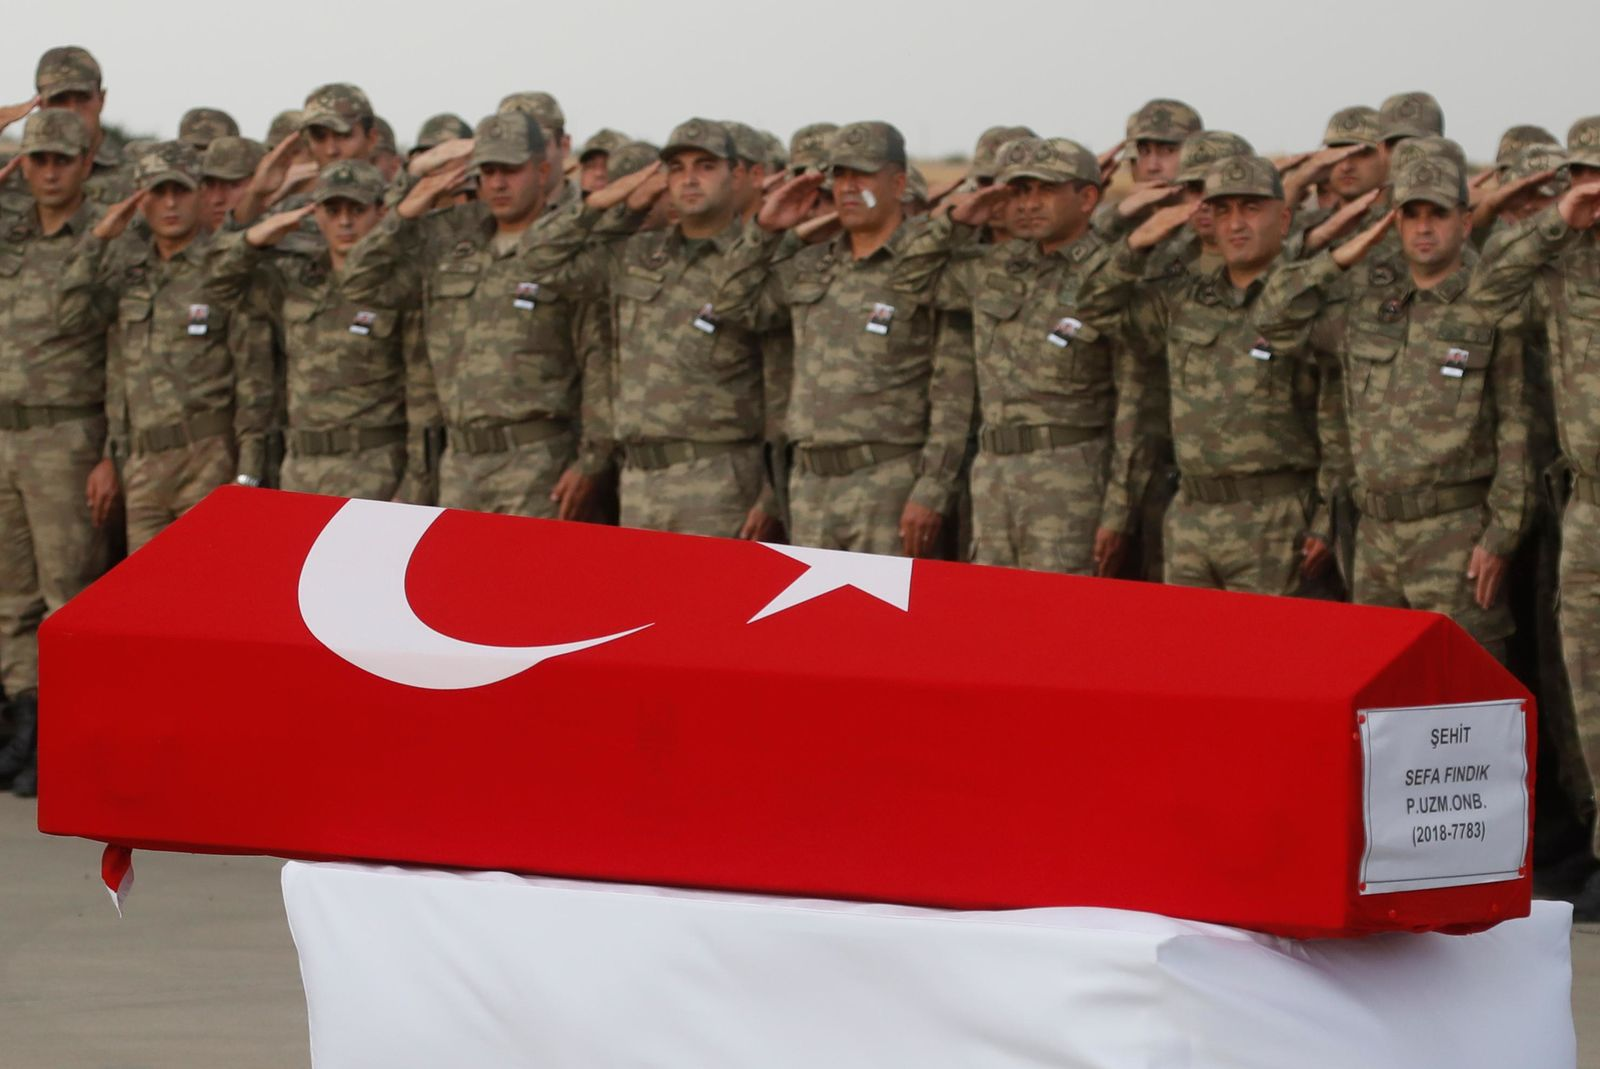 Turkish soldiers salute the Turkish flag-draped coffin of soldier Sefa Findik, killed in action in Syria earlier in the day, during a ceremony at the airport in Sanliurfa, southeastern Turkey, Sunday, Oct. 20, 2019.  This death brings Turkey's military death toll to seven soldiers in its wide-ranging offensive against Syrian Kurdish forces.(AP Photo/Lefteris Pitarakis)